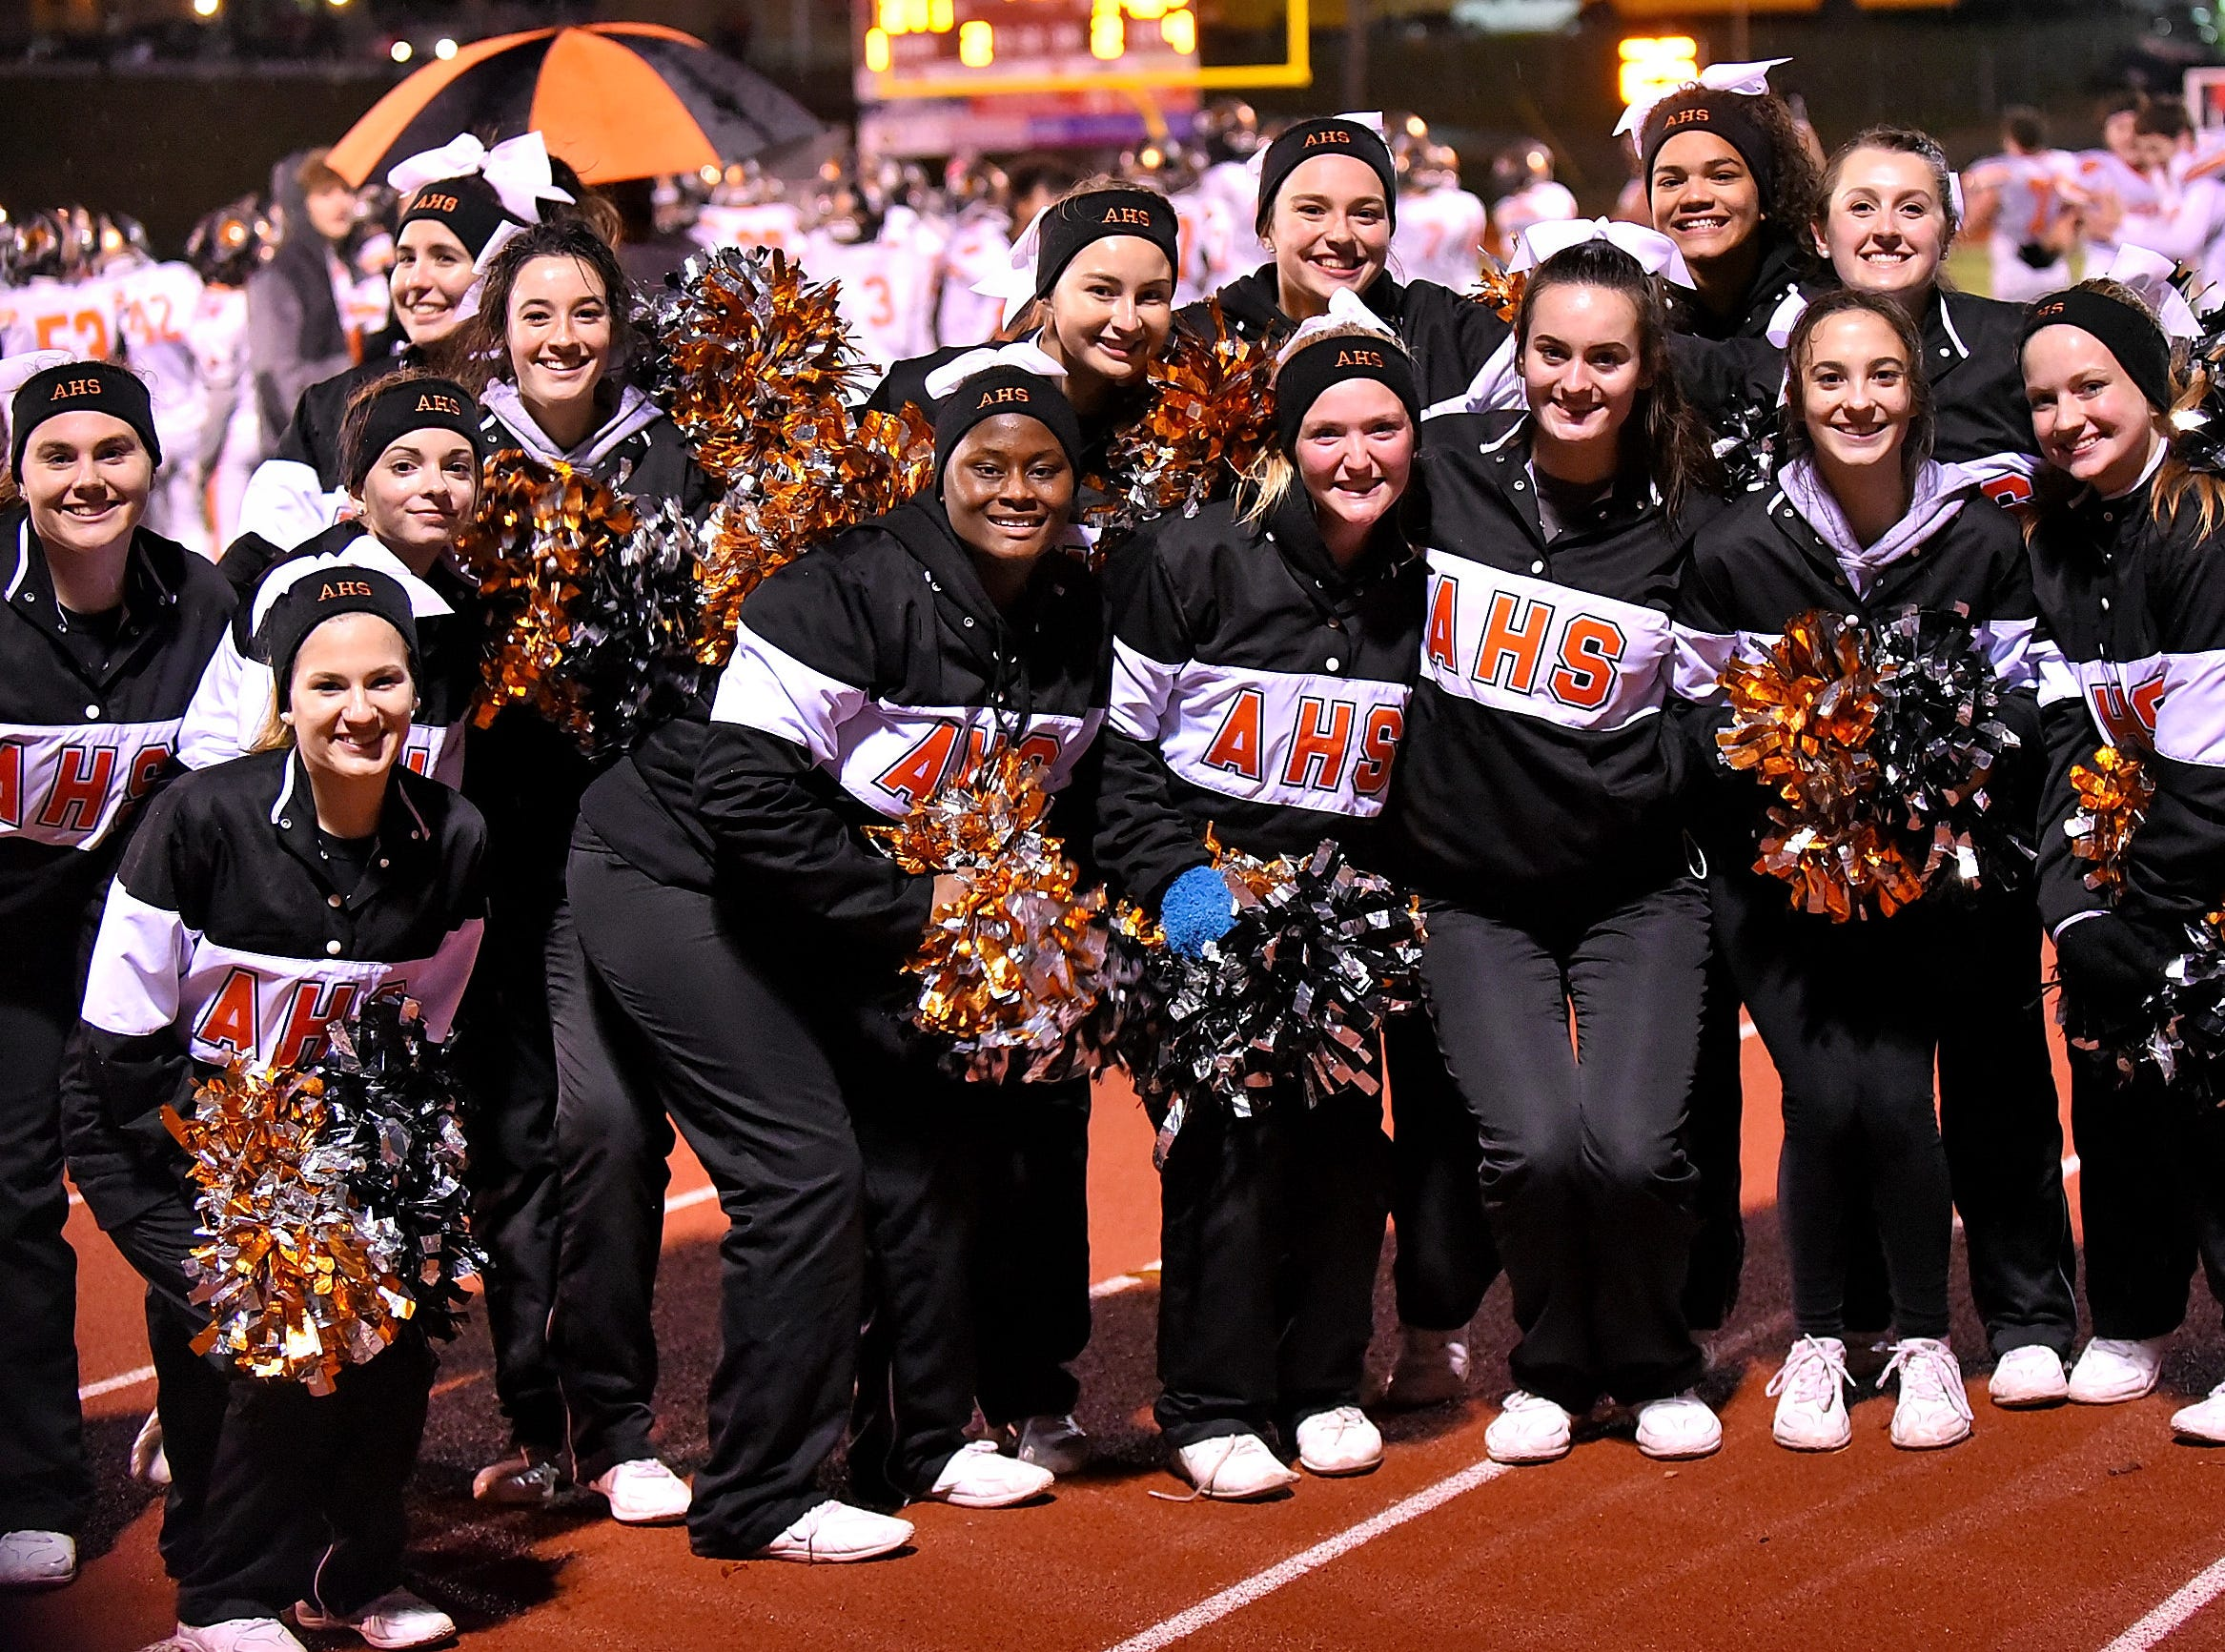 The Anderson Redskins cheerleaders celebrate the 42-35 win in the Division 2 Region quarterfinal playoff game, November 2, 2018.